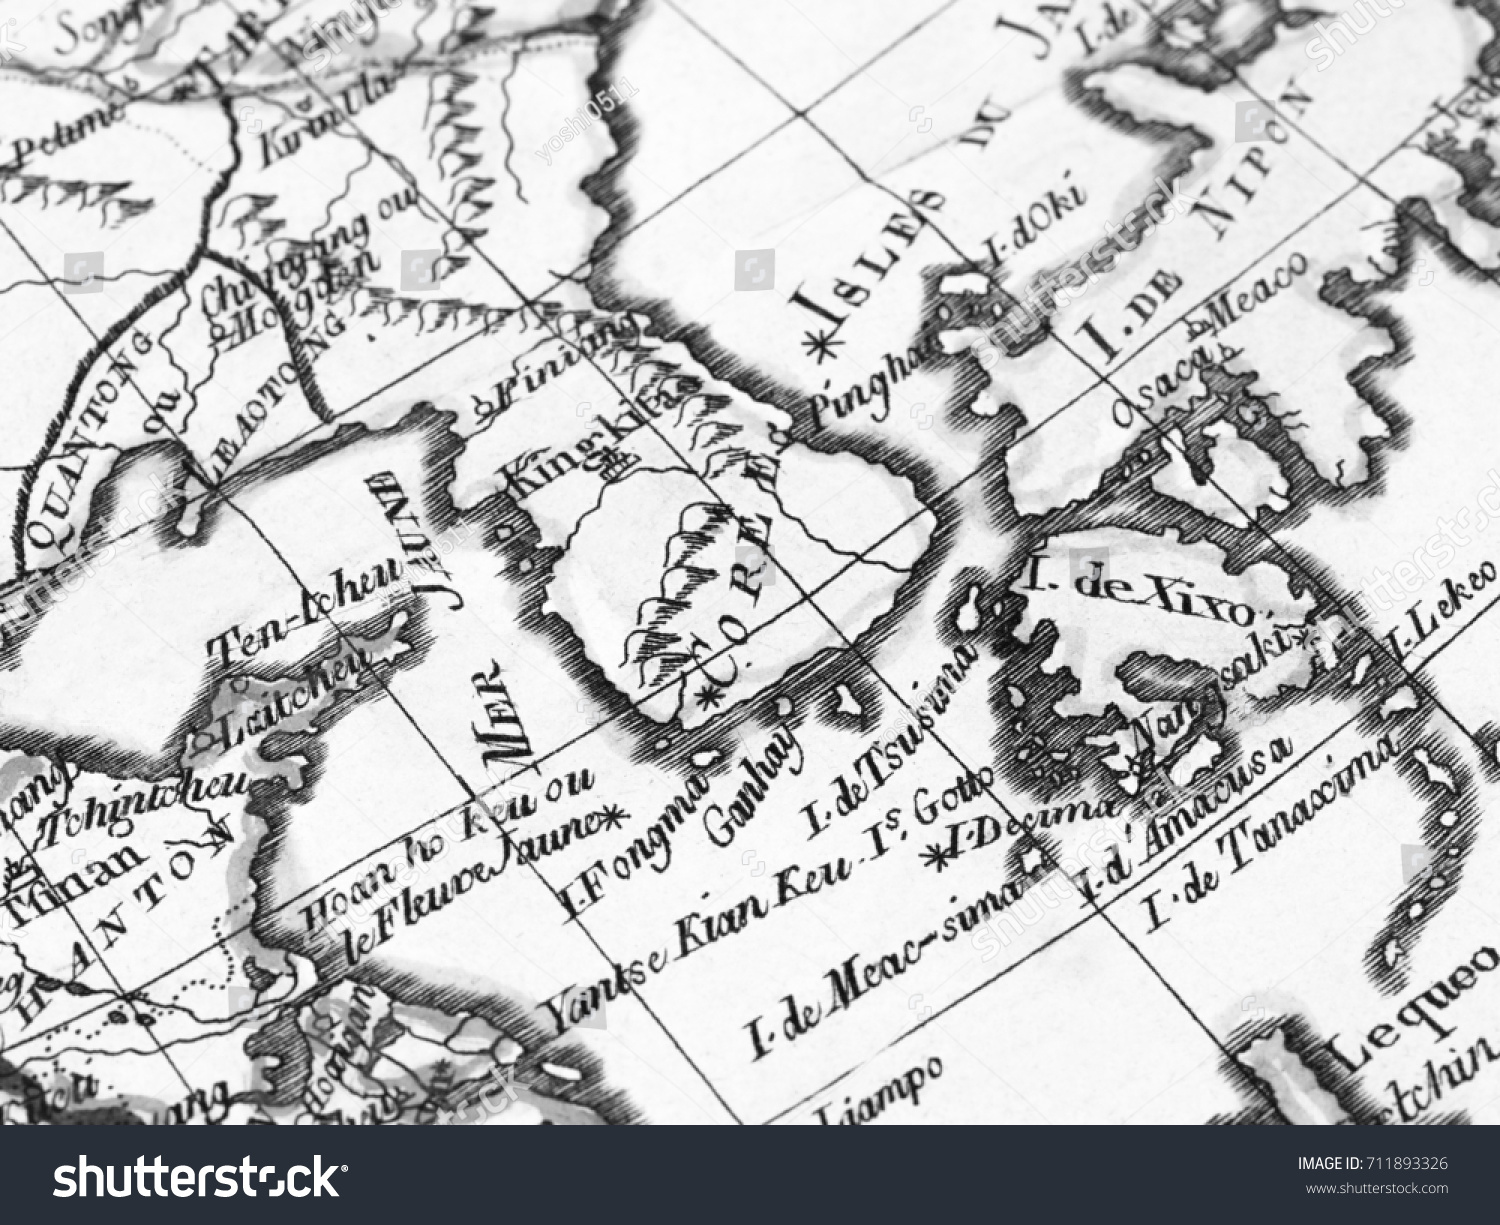 old map korean peninsula stock photo edit now 711893326 shutterstock Capes and Peninsula's of Europe old map korean peninsula